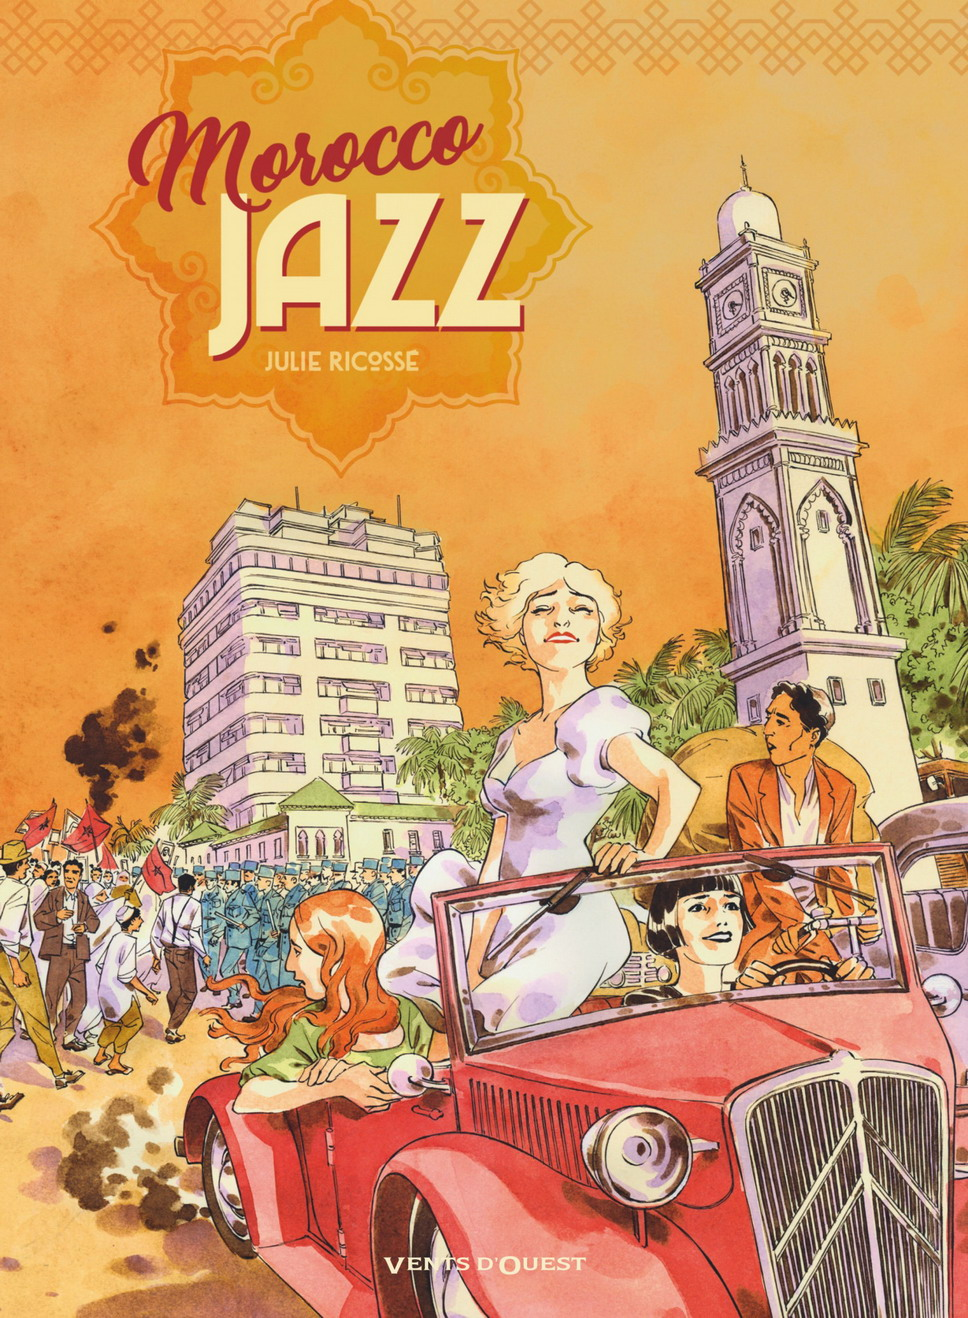 Couverture BD Morocco Jazz